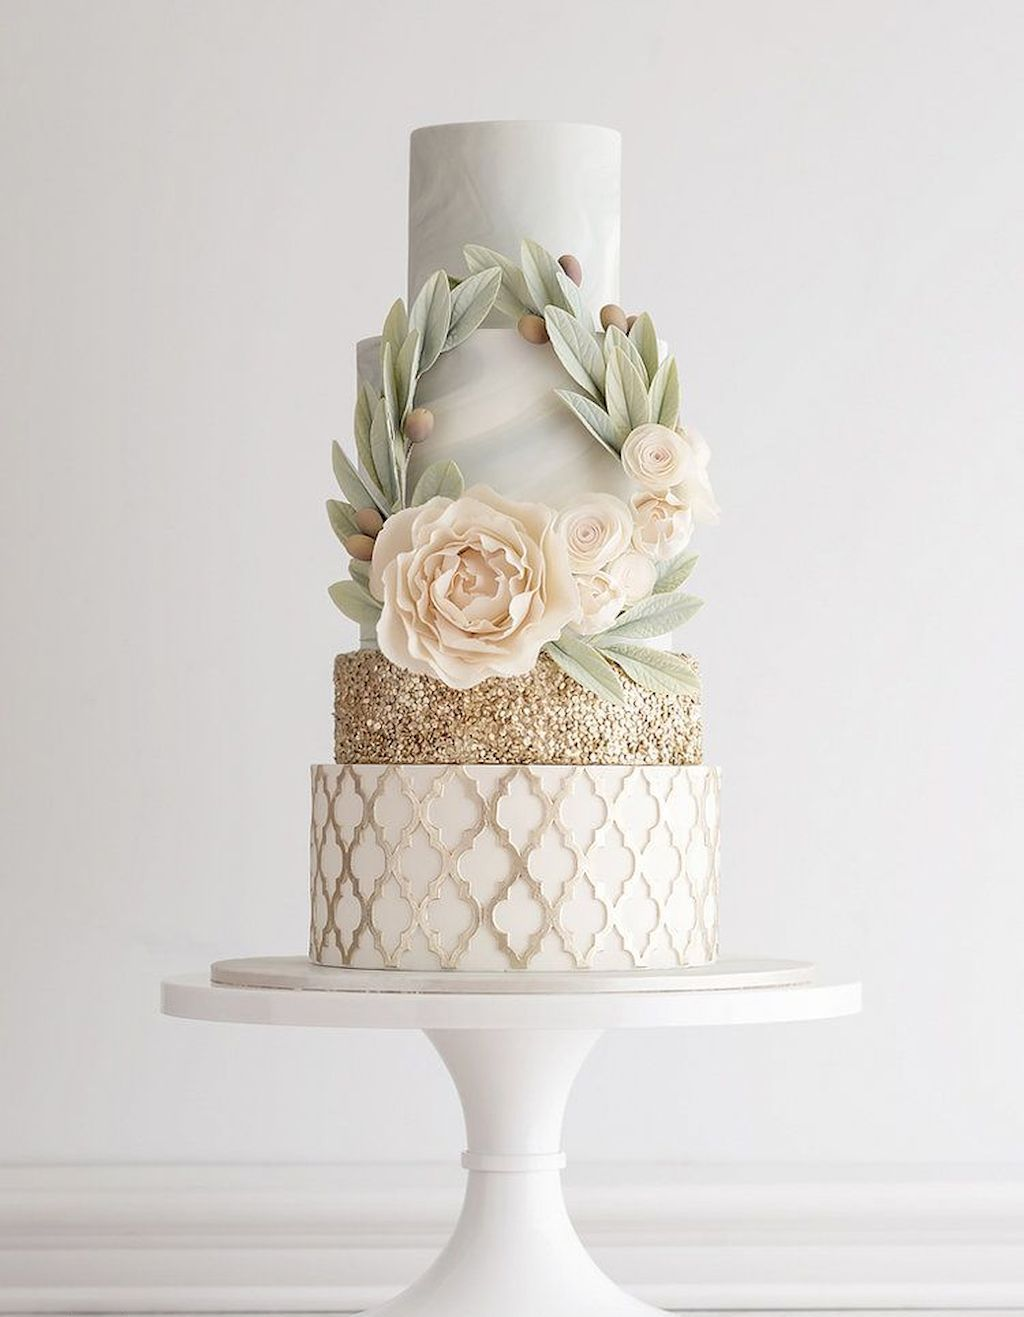 44 Green Wedding Cake Inspiration with Classy Design